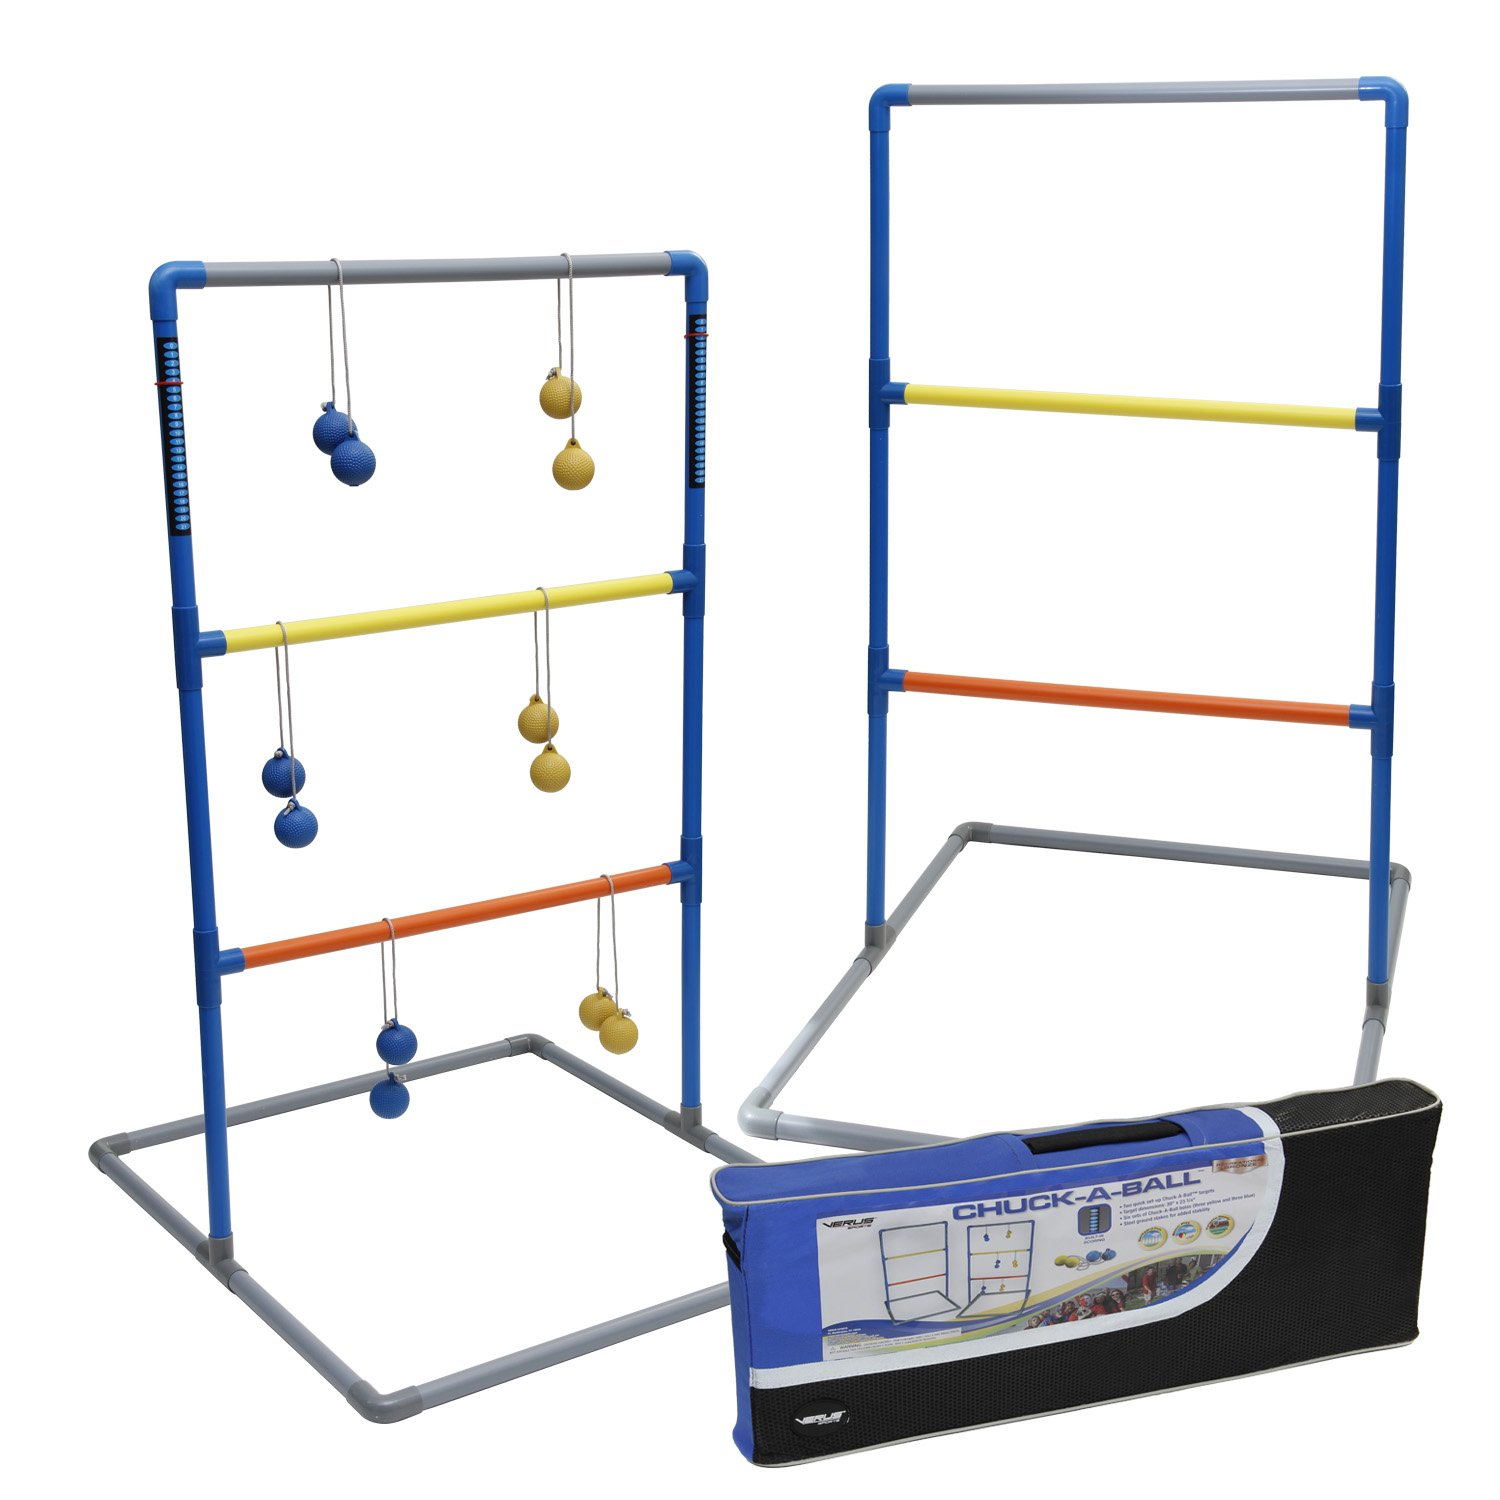 Verus Sports Ladder Ball Toss Game by Verus Sports